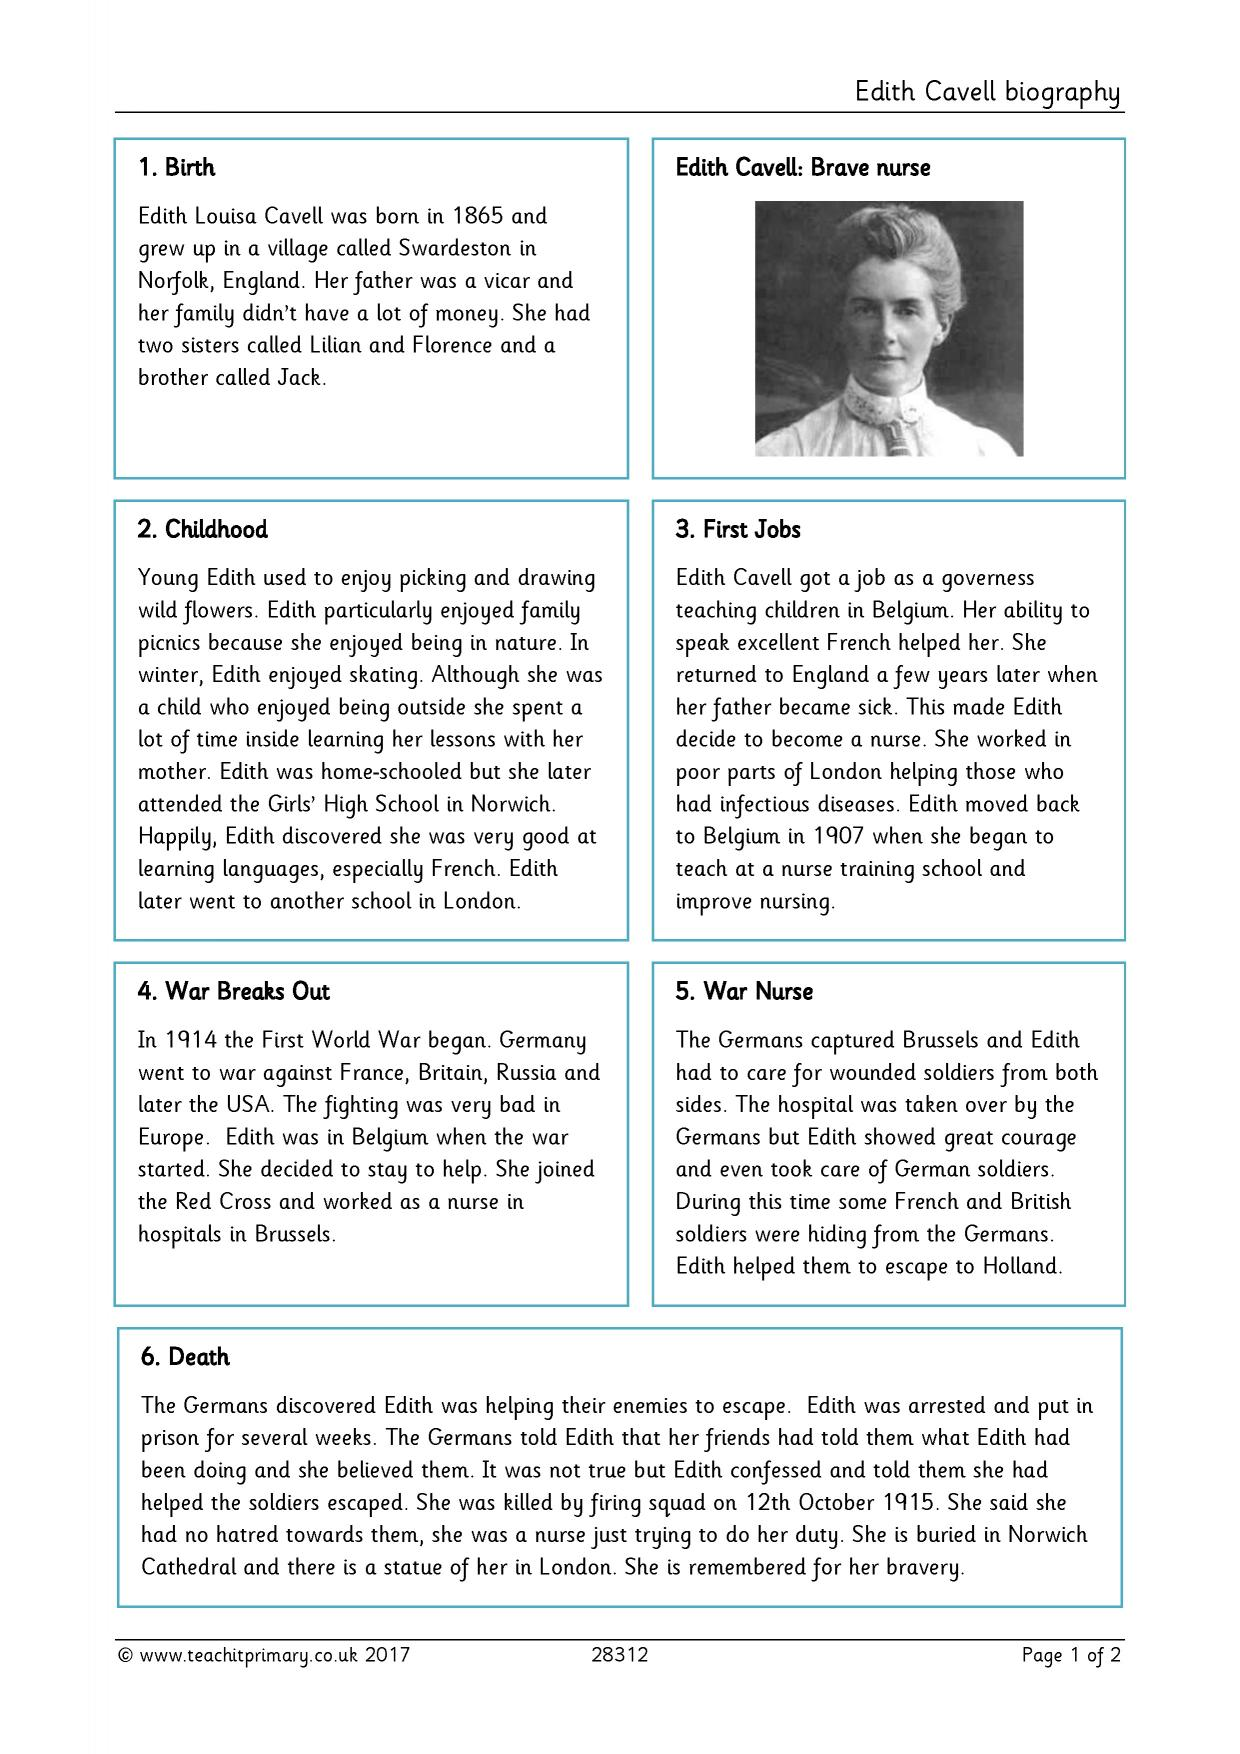 How to write a biographical essay